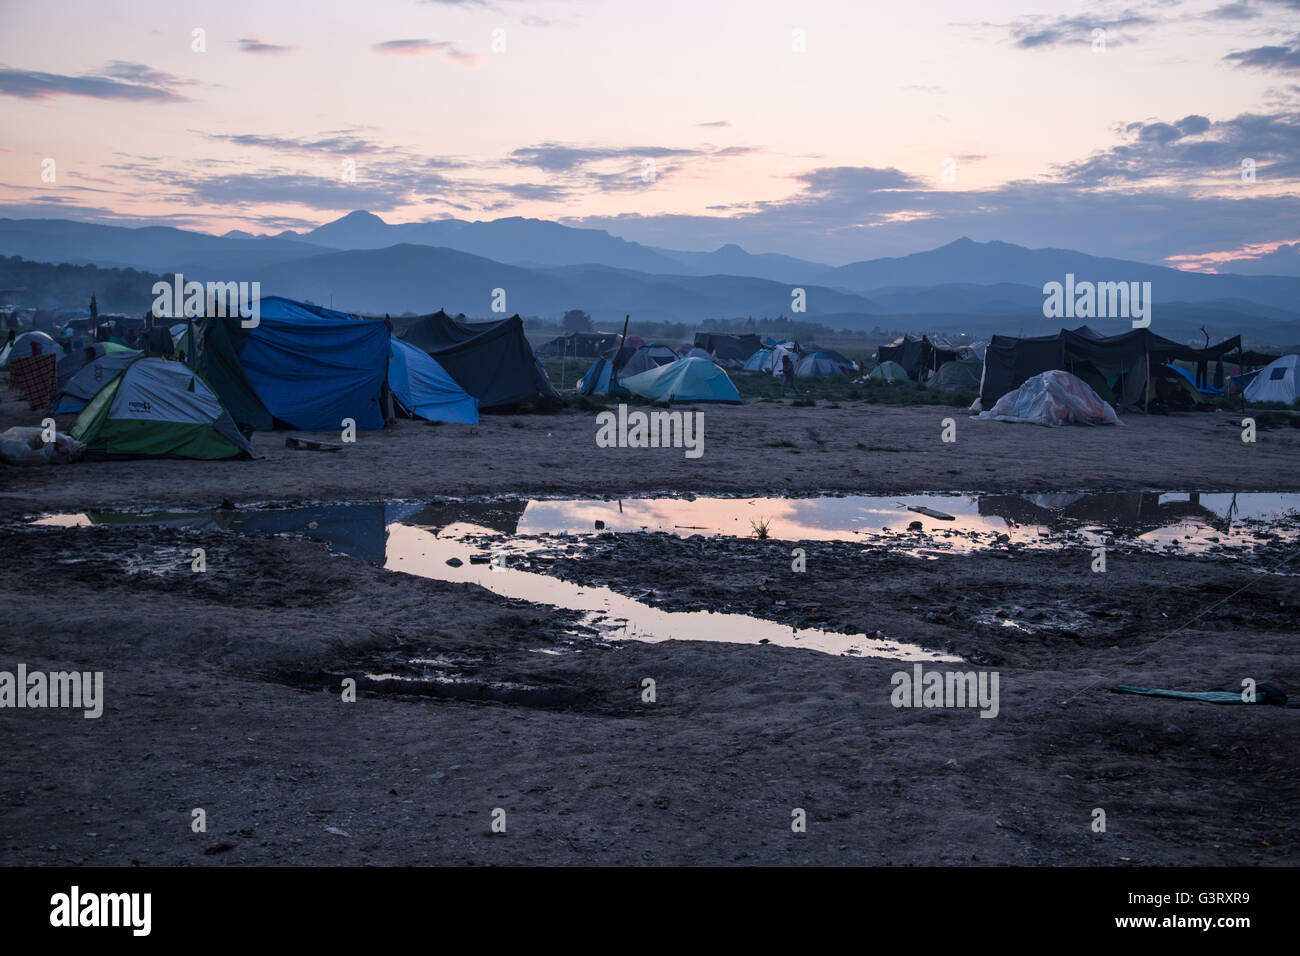 Conditions at the Syrian refugee camp of Idomeni, Greece, after a spring rain, with tents and puddles visible. - Stock Image